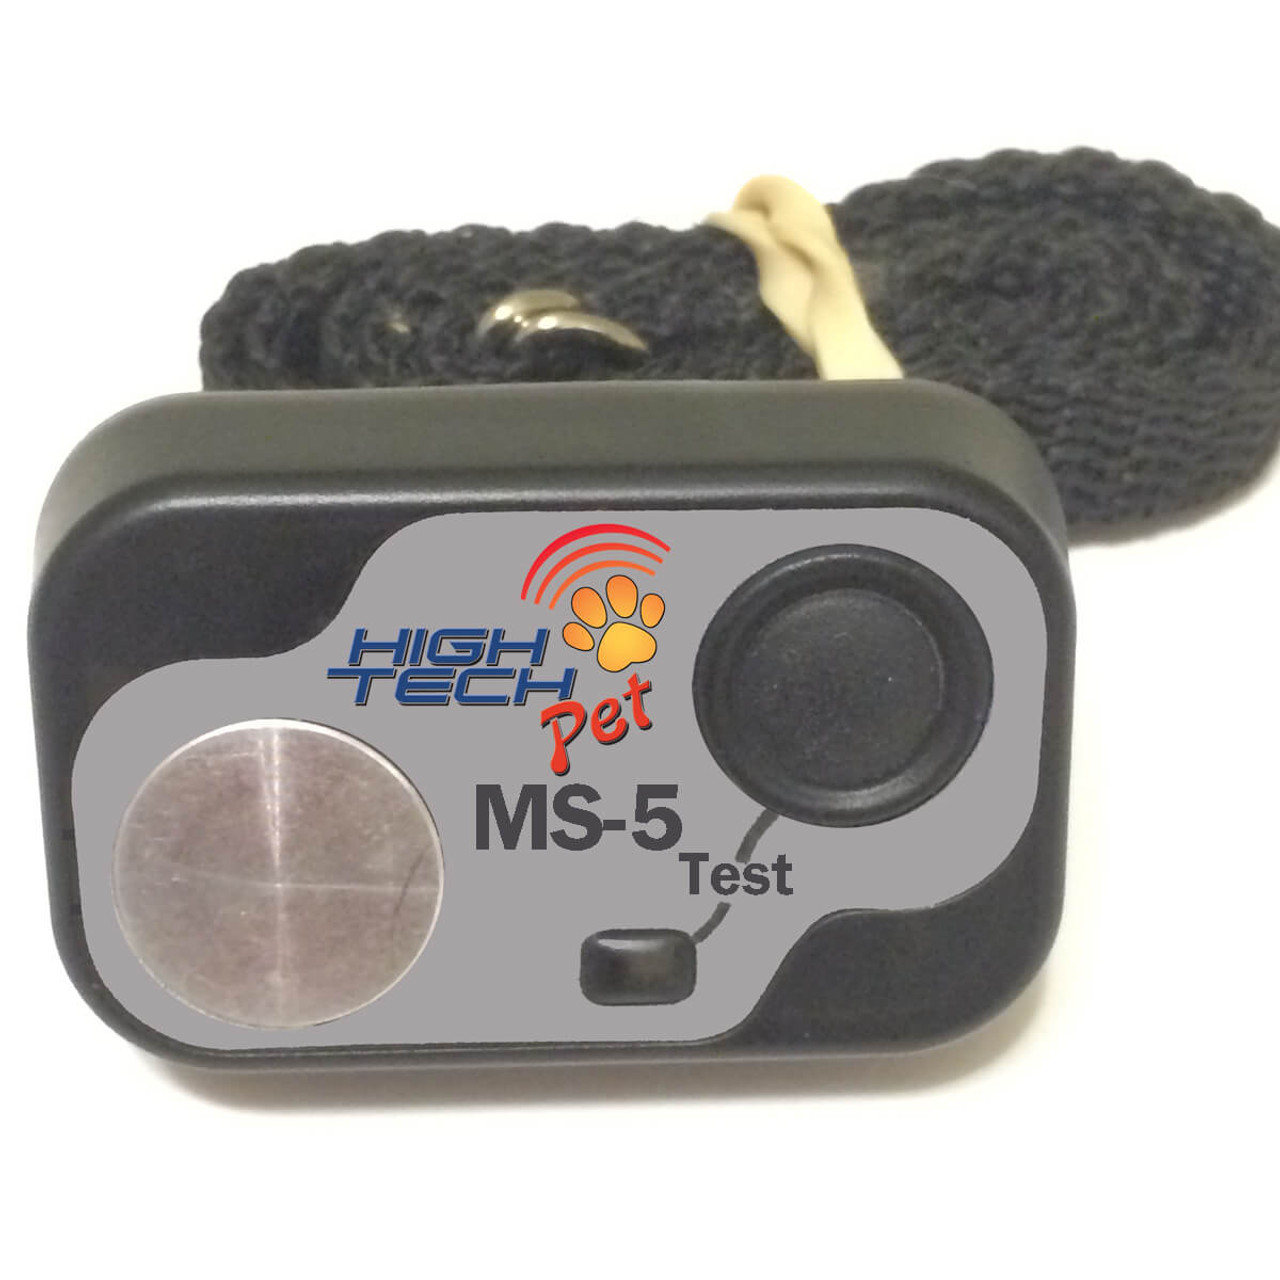 High Tech Pet Electronic Dog Doors Come With The MS 5 Ultrasonic Key Which  Operates